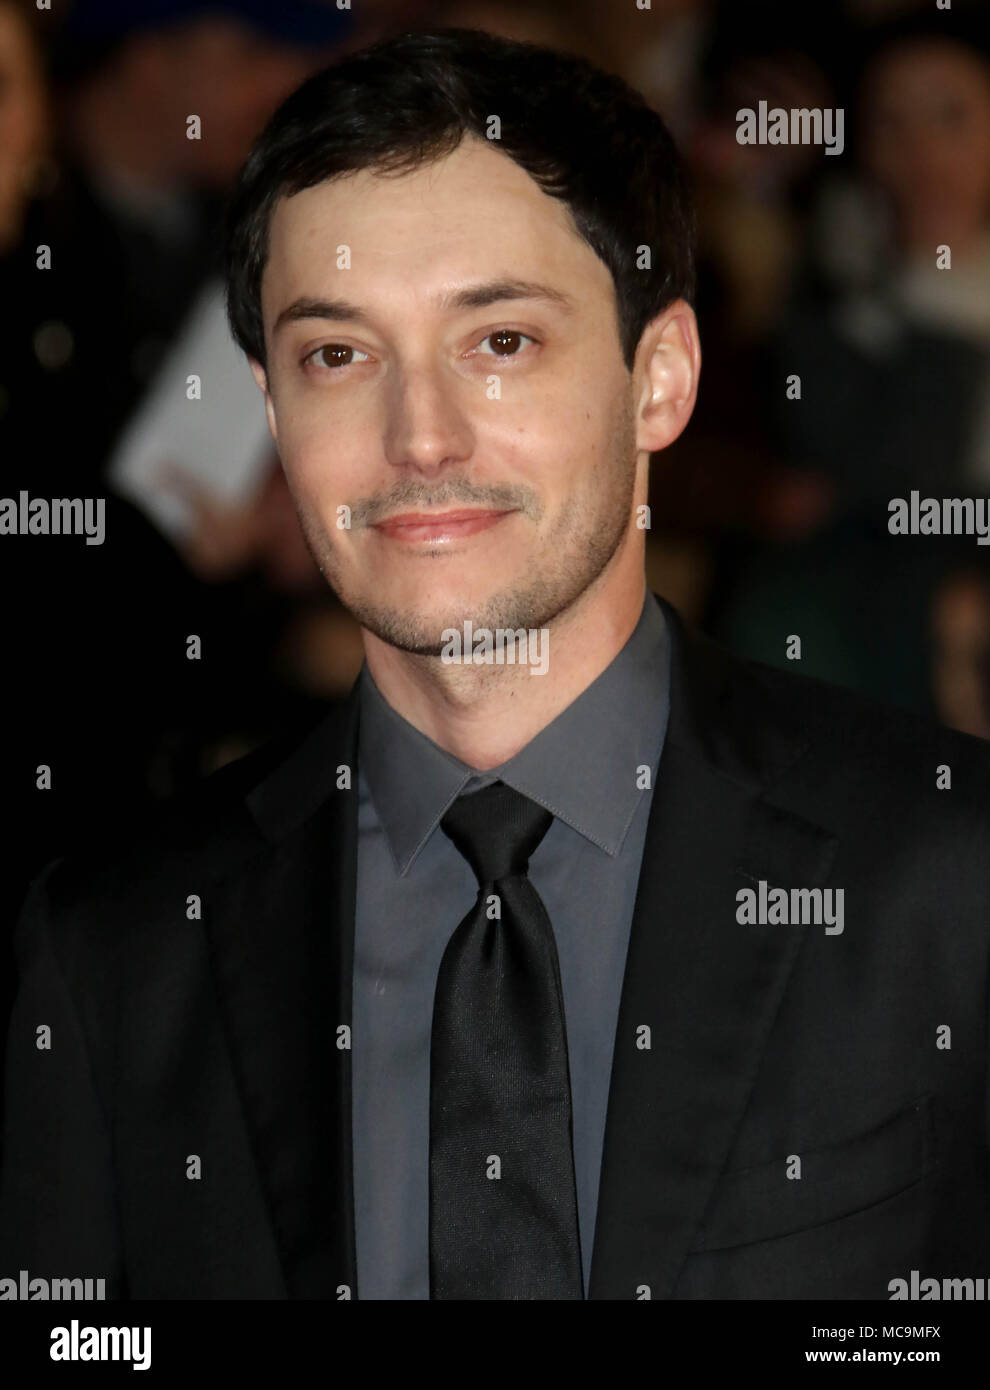 Jan 22, 2018 - Wes Ball attending The UK Fan Screening of 'Maze Runner: The Death Cure' at Vue Leicester Square in London, England, UK - Stock Image